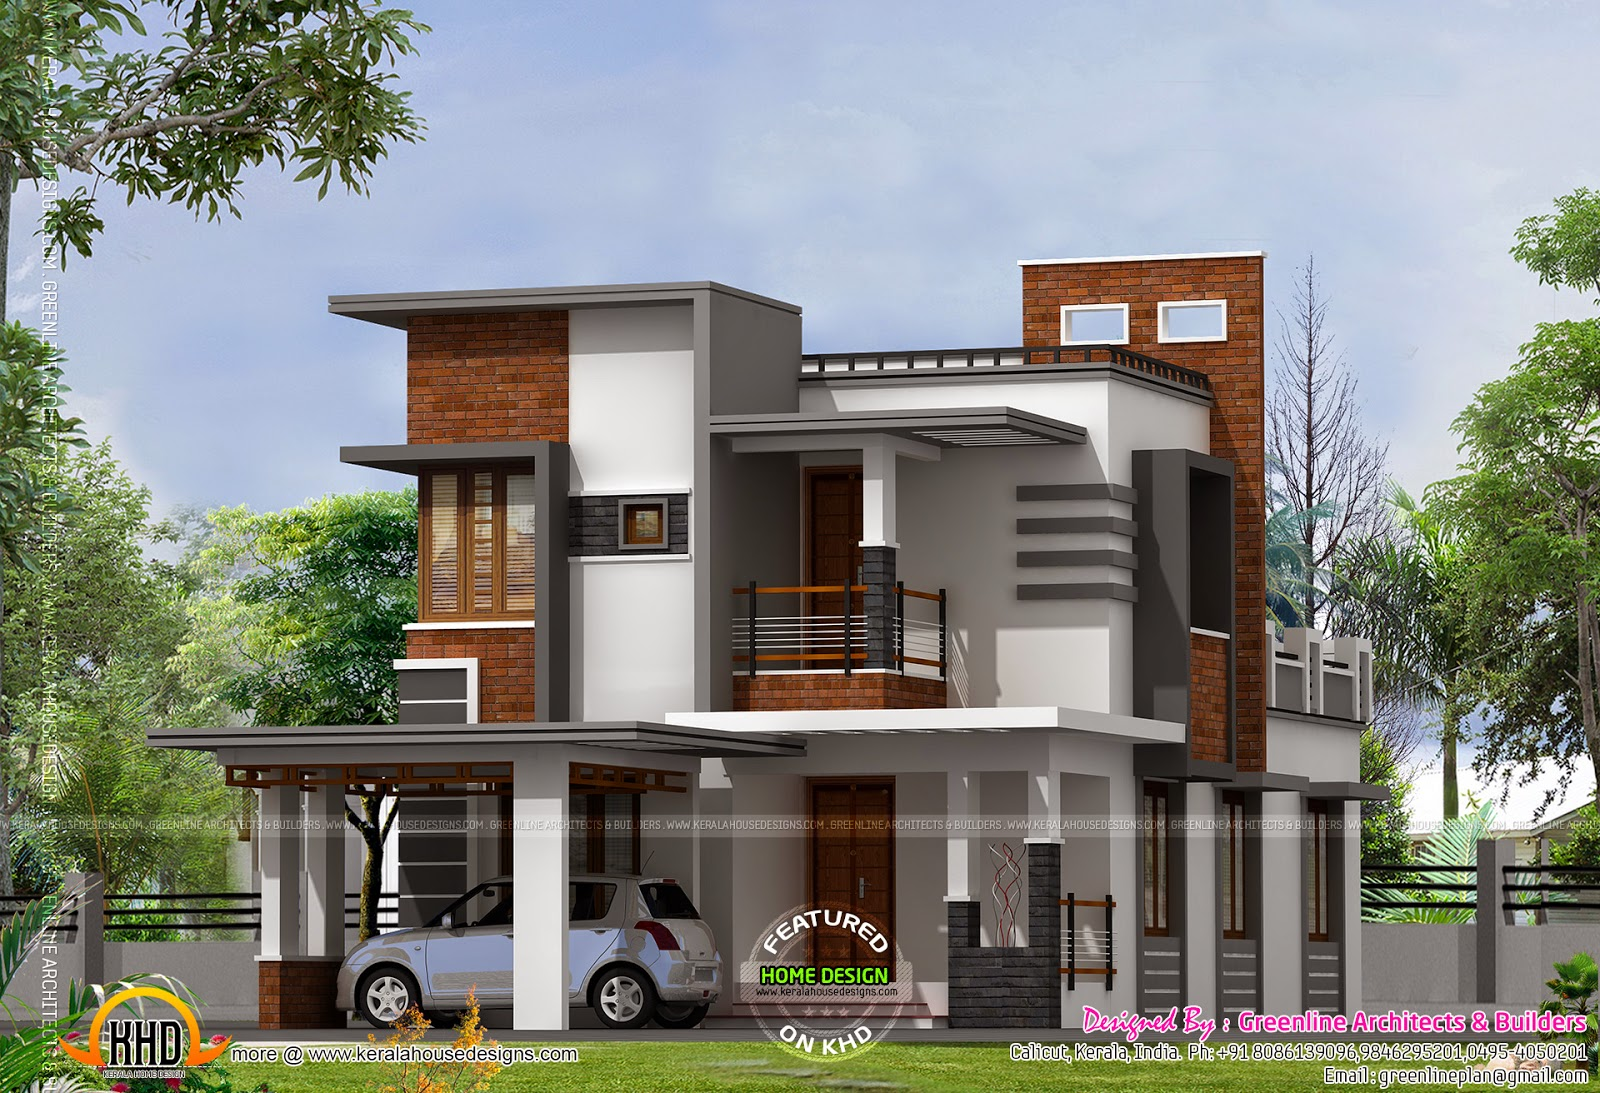 Low cost contemporary house kerala home design and floor for Low cost house plans with estimate